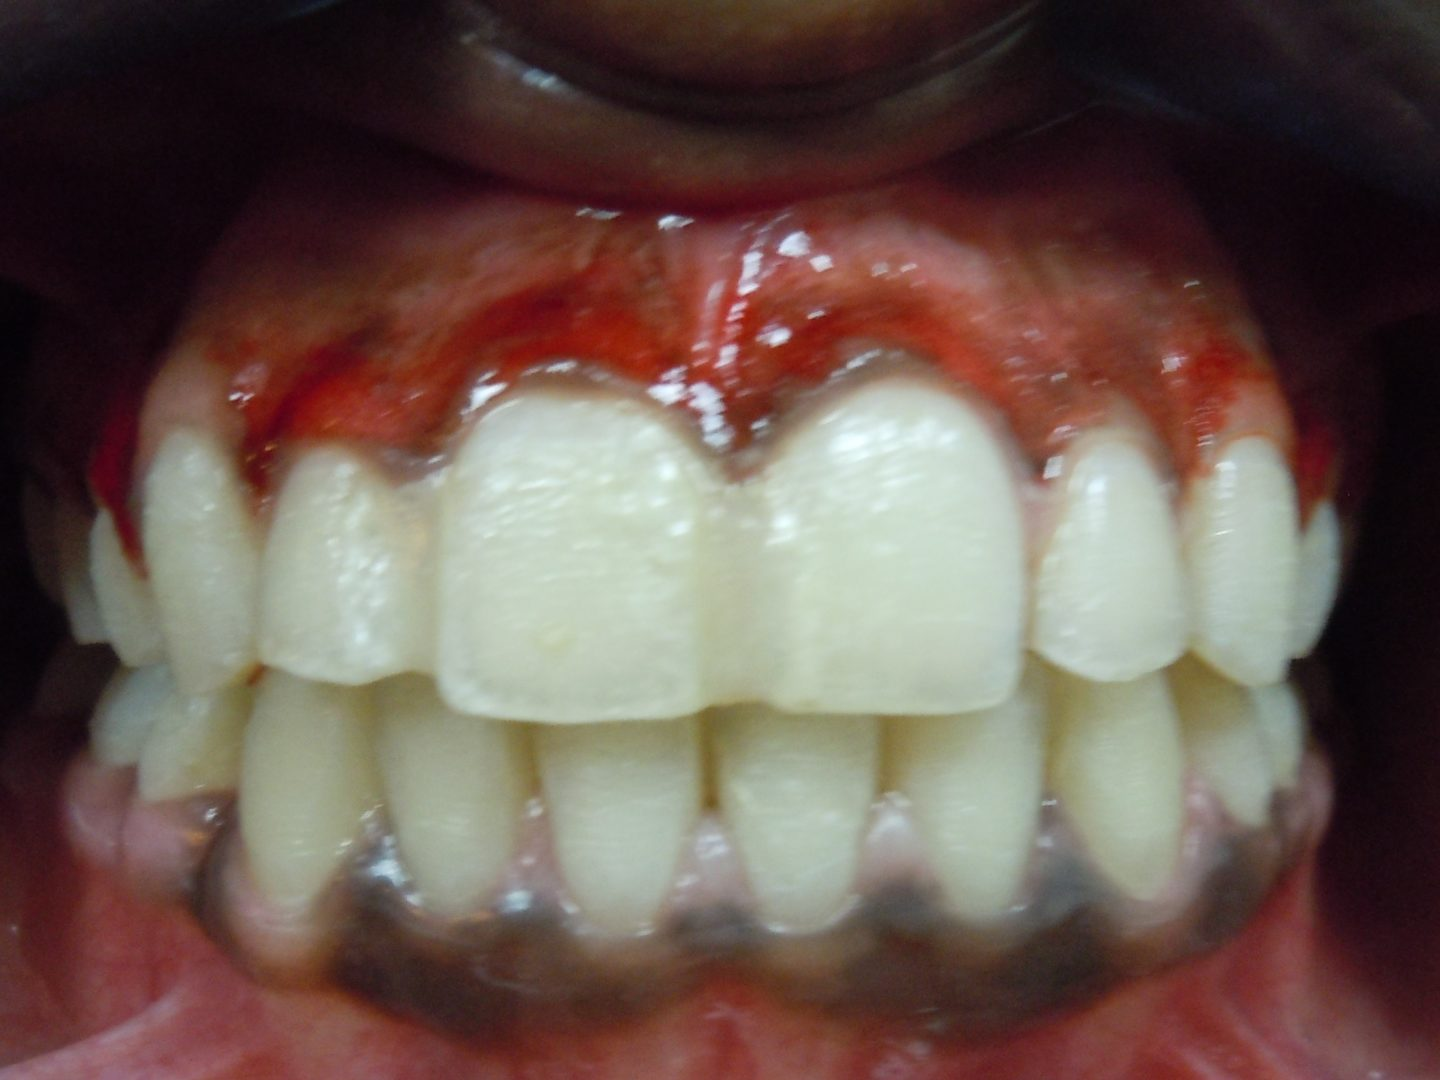 Post Op - Dr-Smilez Dental Center - Chennai